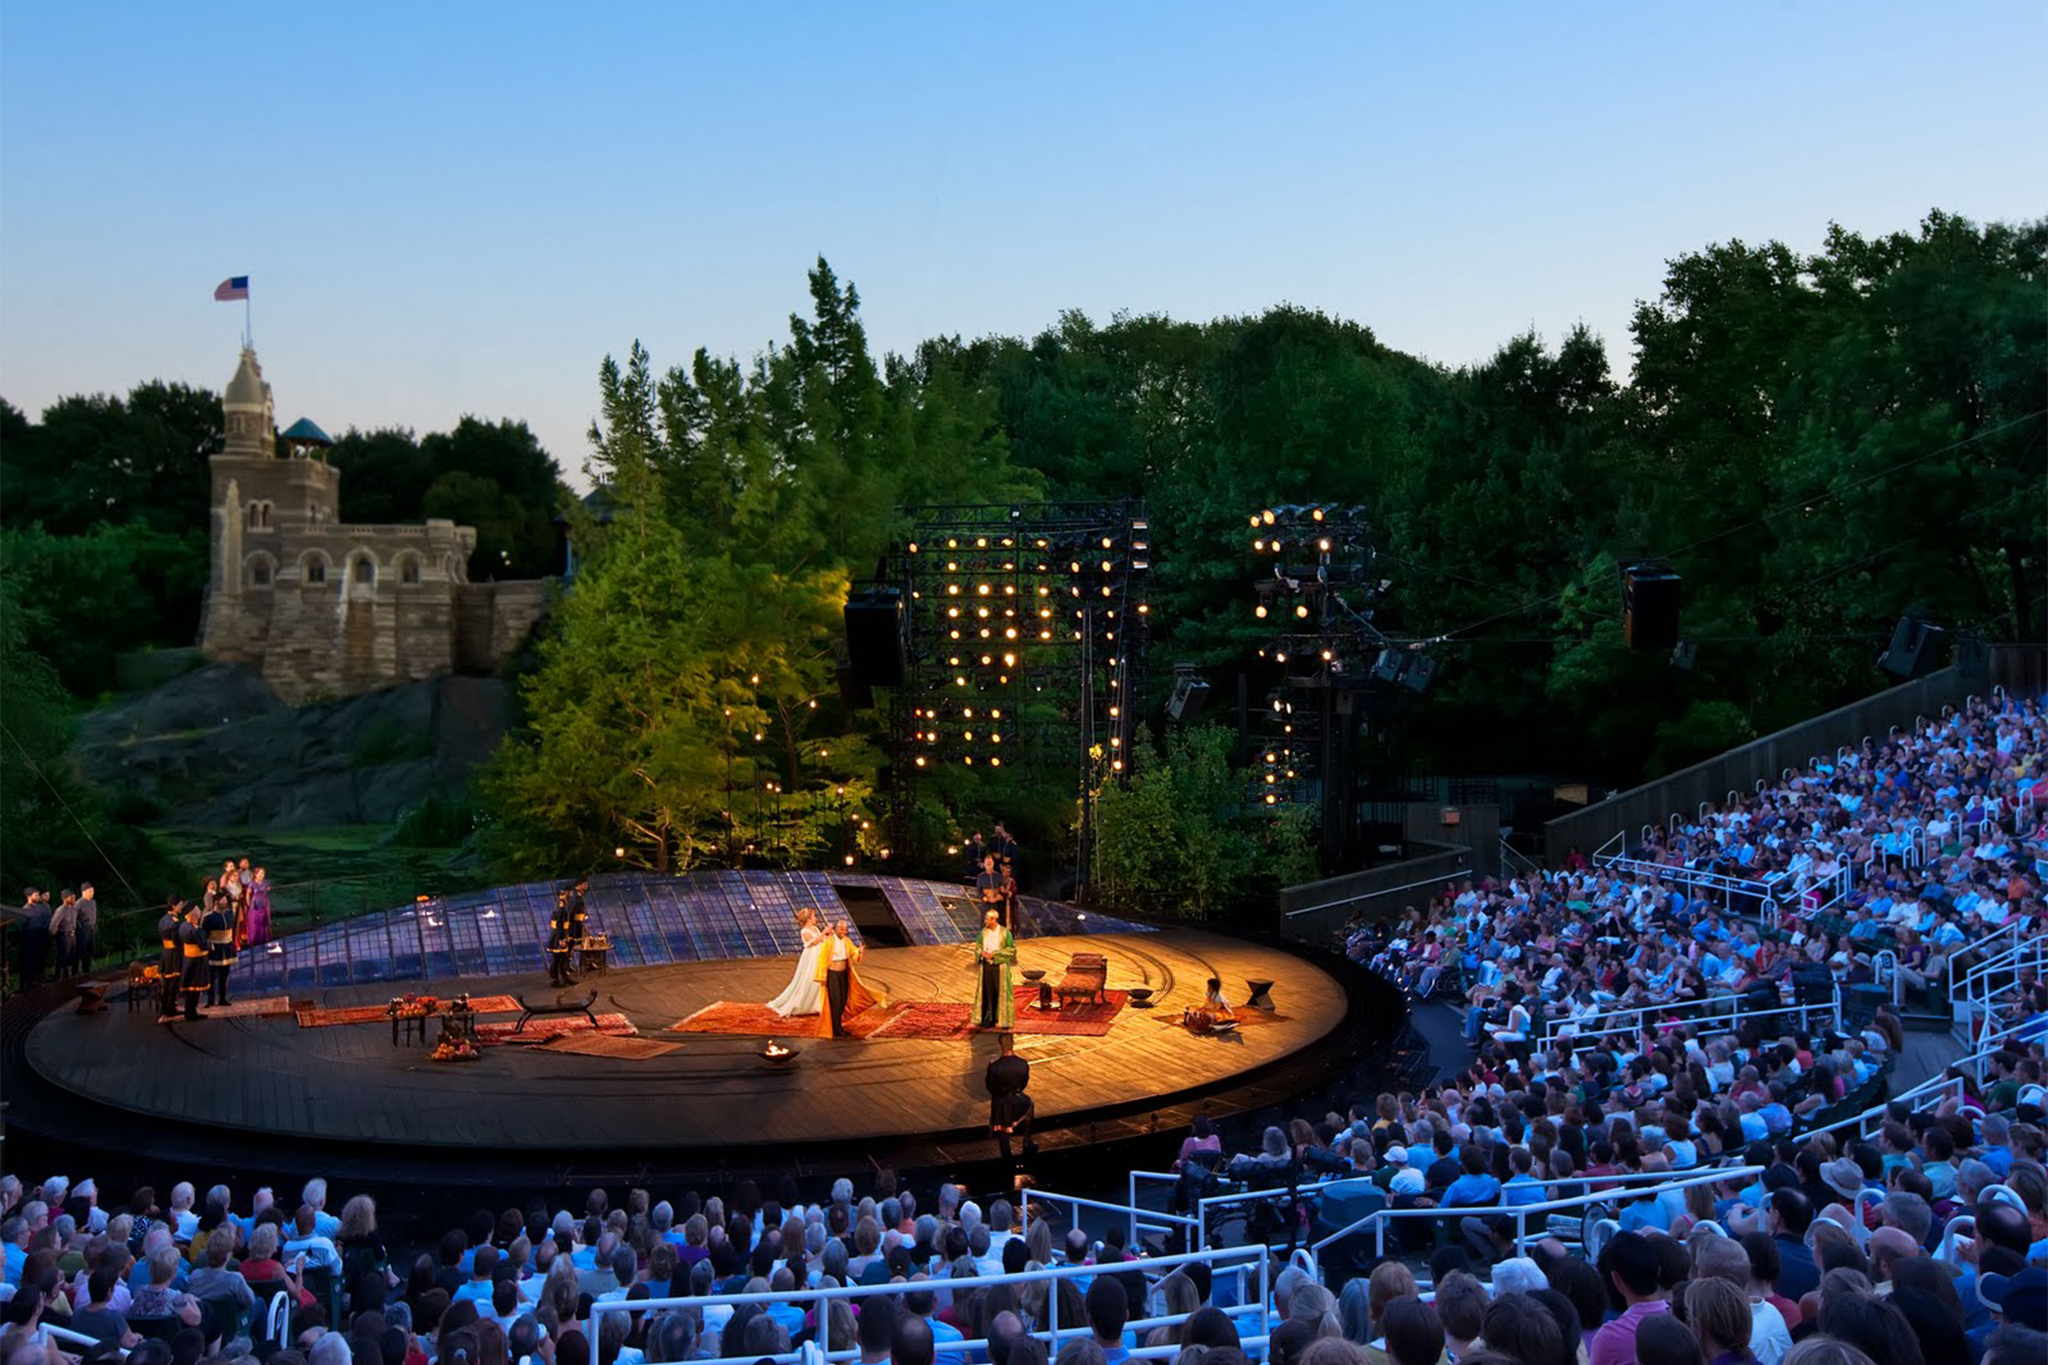 Shakespeare in the Park in NYC